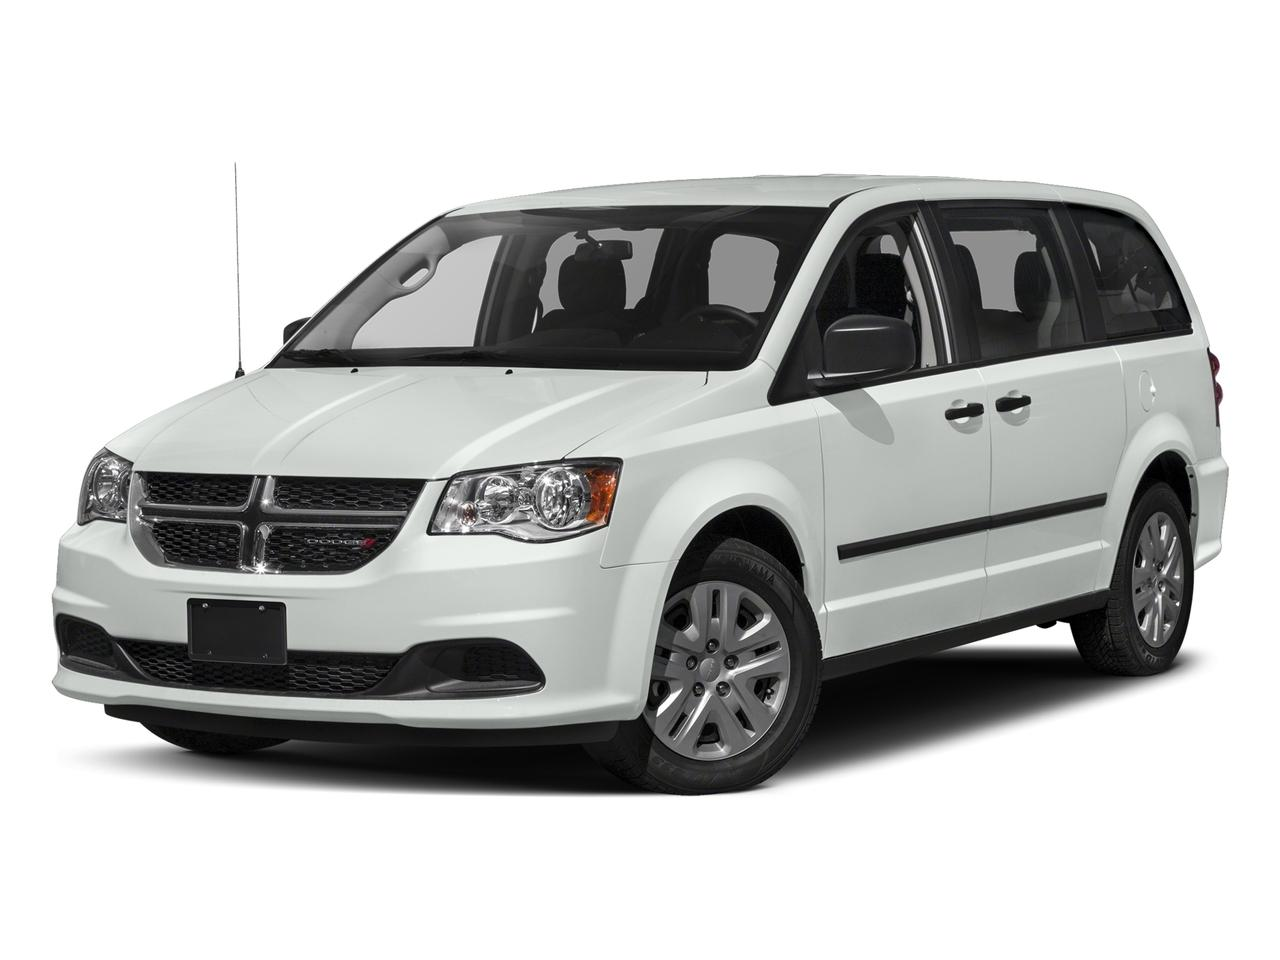 2016 Dodge Grand Caravan Vehicle Photo in Wendell, NC 27591